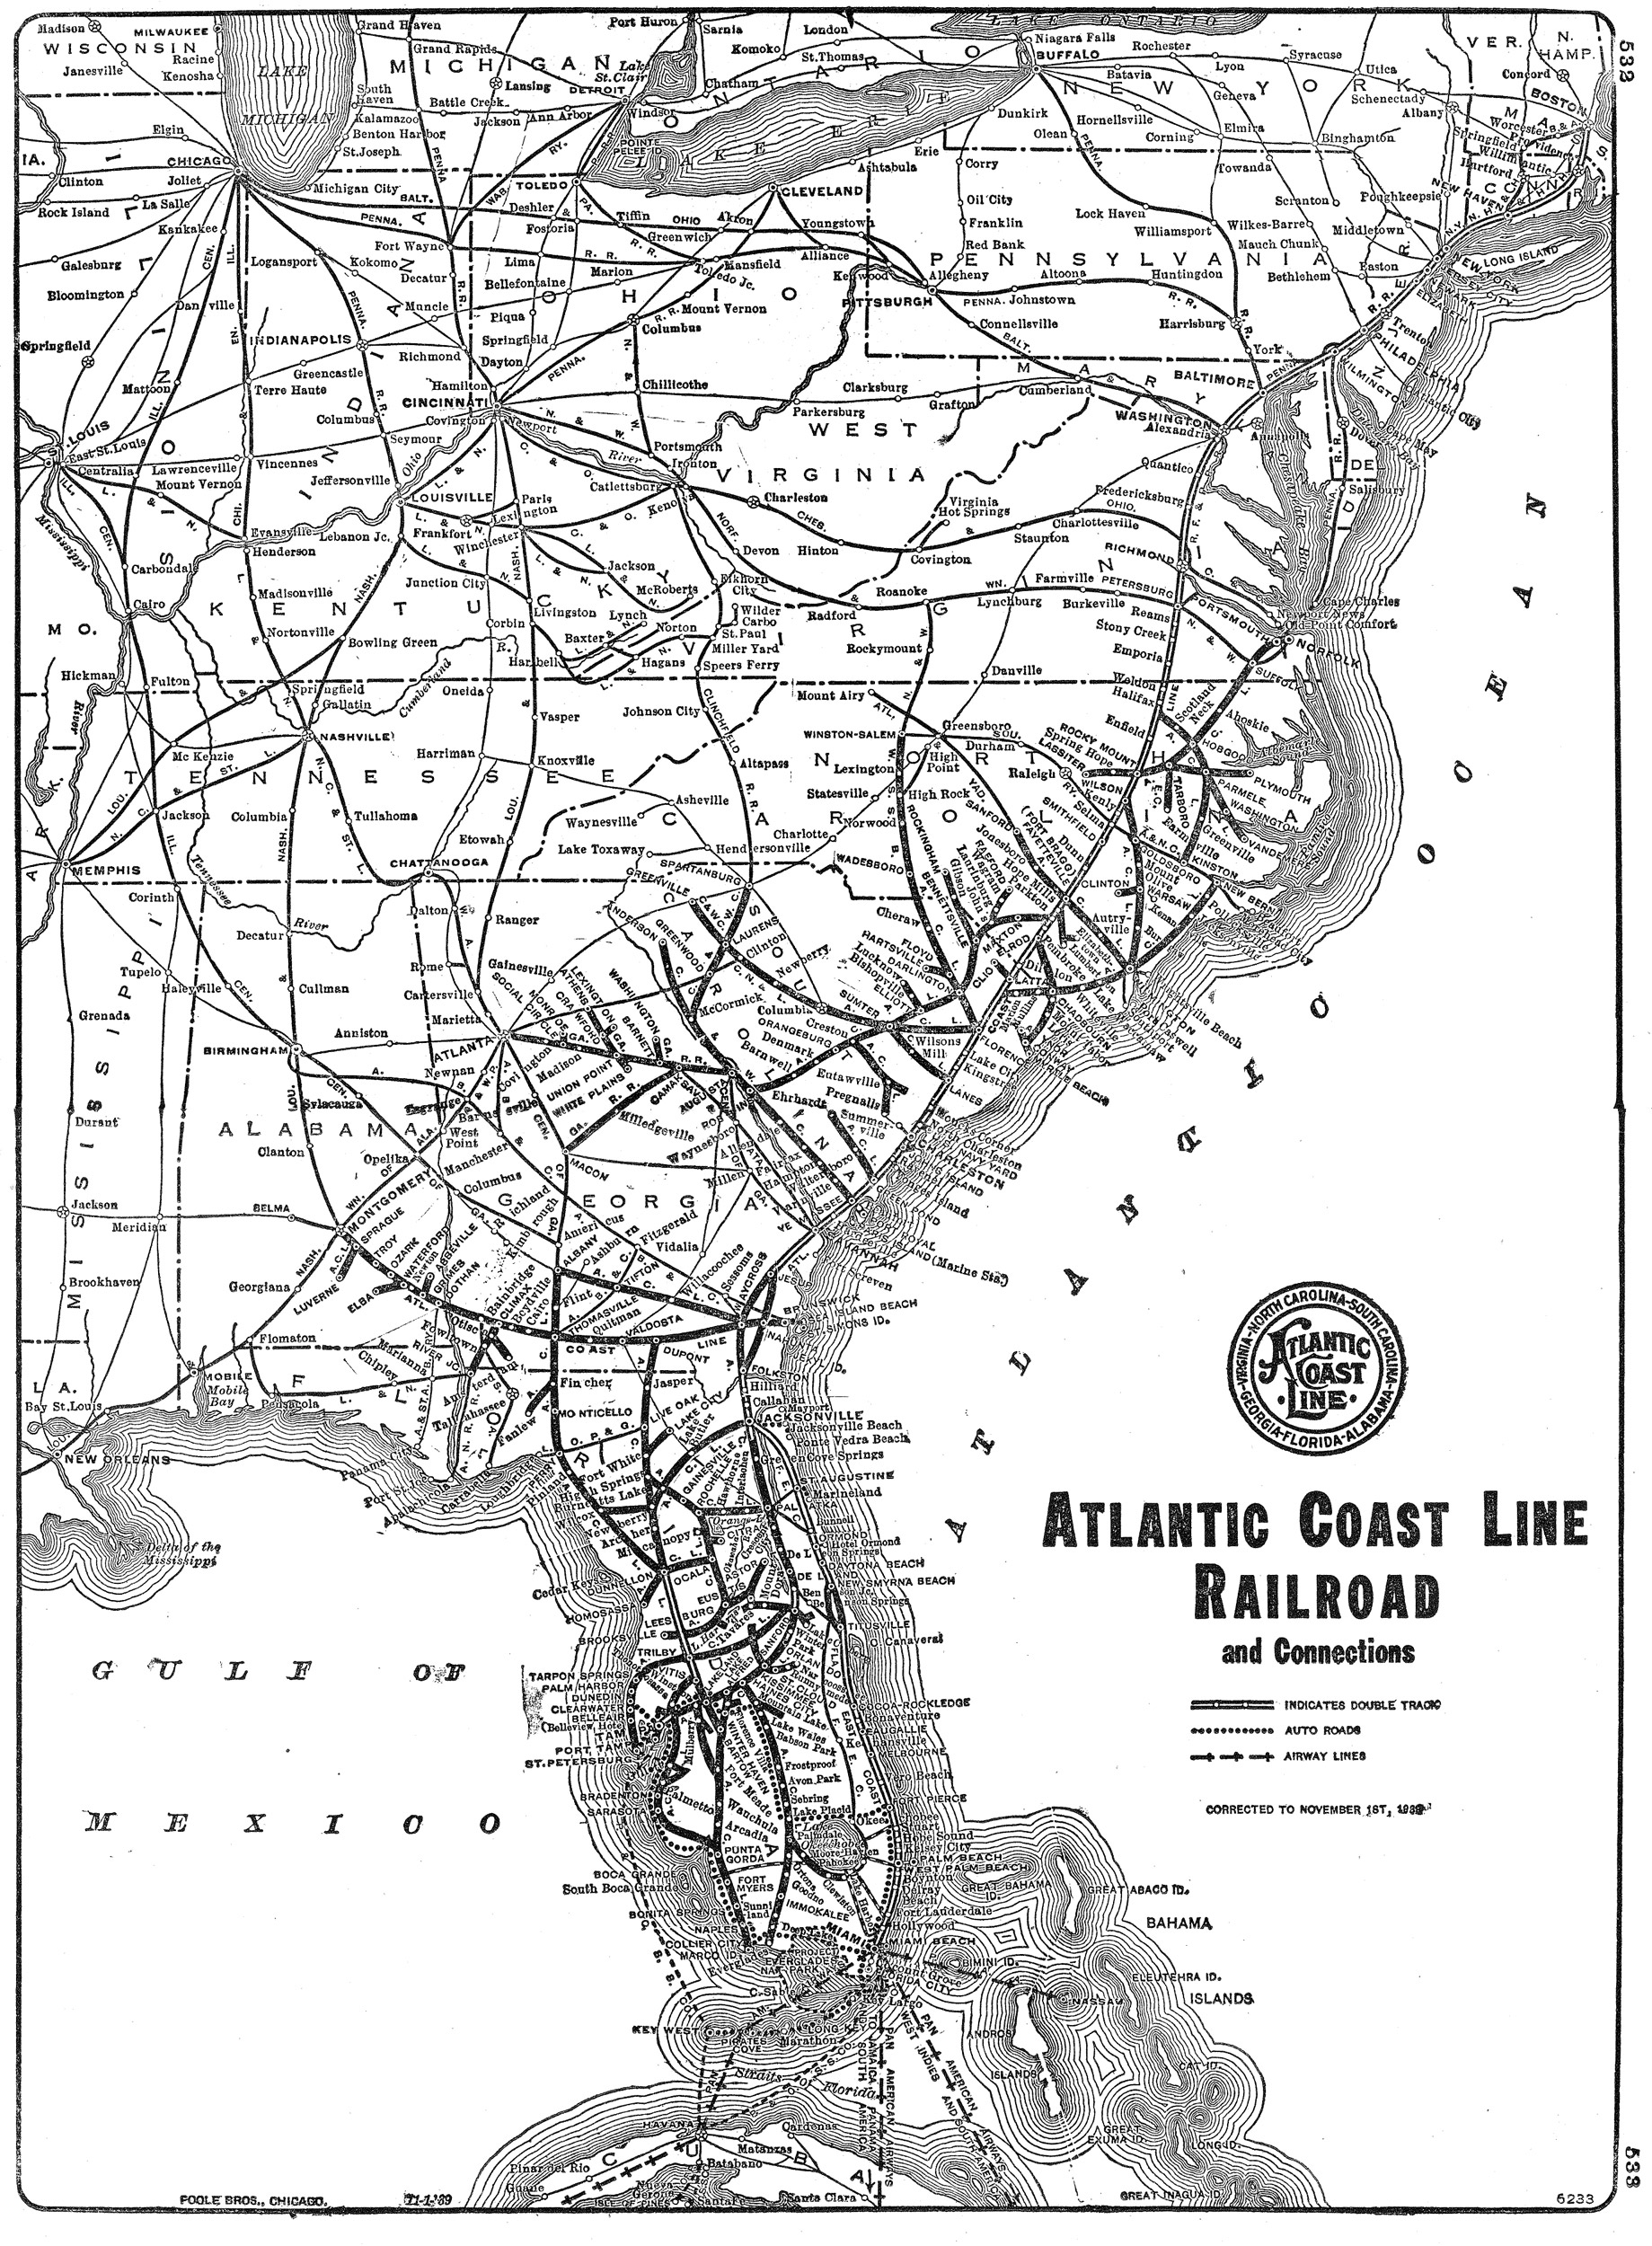 Atlantic Coast Florida Map.Atlantic Coast Line Railroad